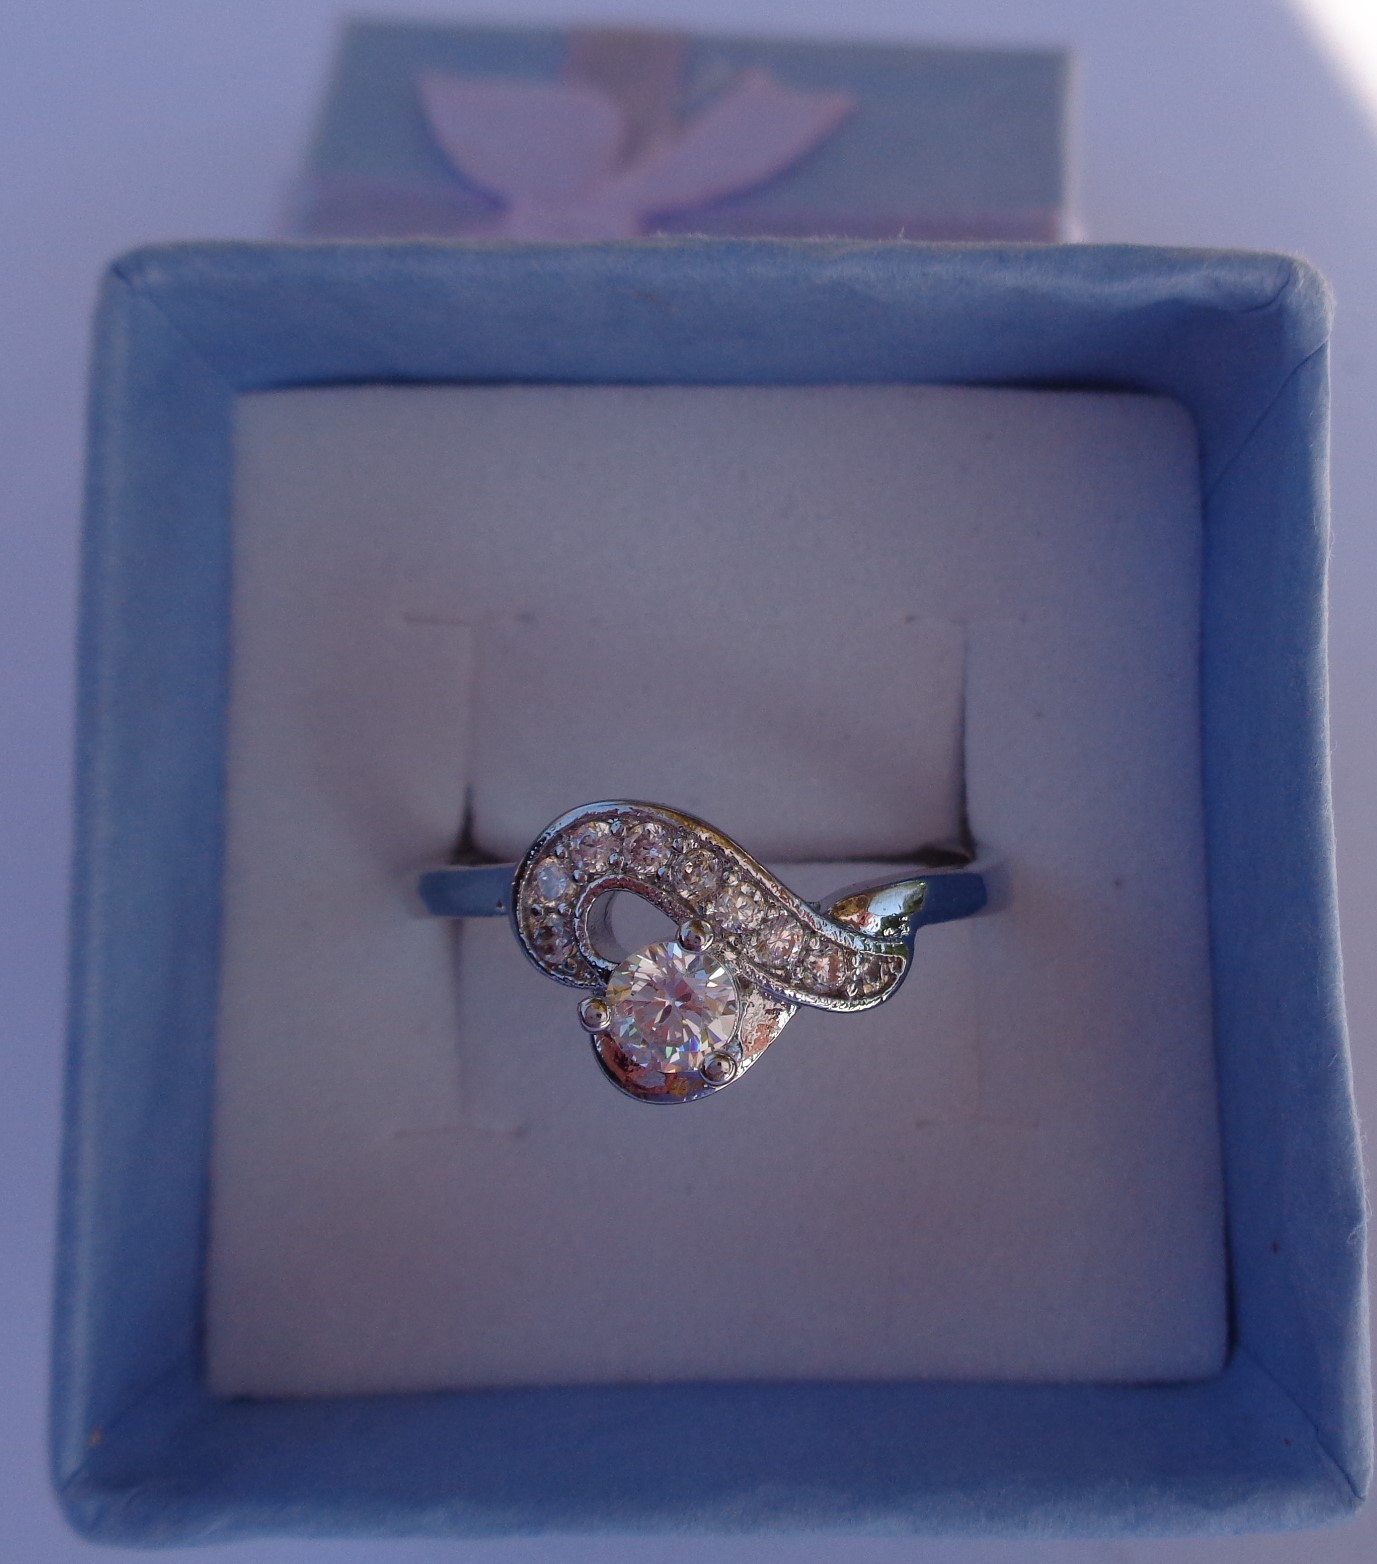 Sterling Silver 925 Twisted Heart Ring NIB Women's Size 7